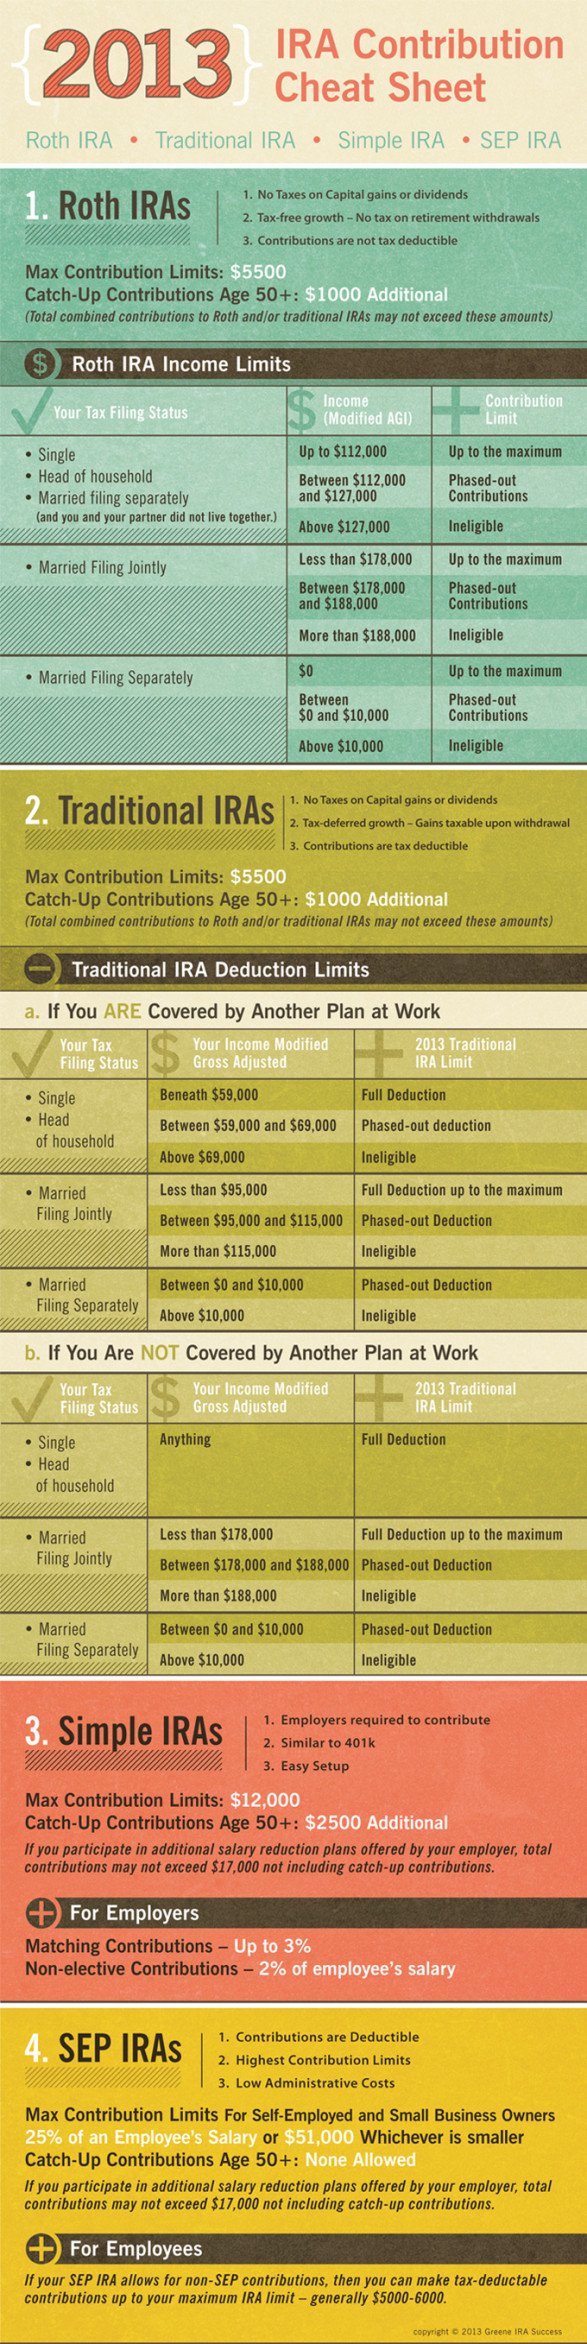 2013 IRA Contribution Limit Cheat Sheet